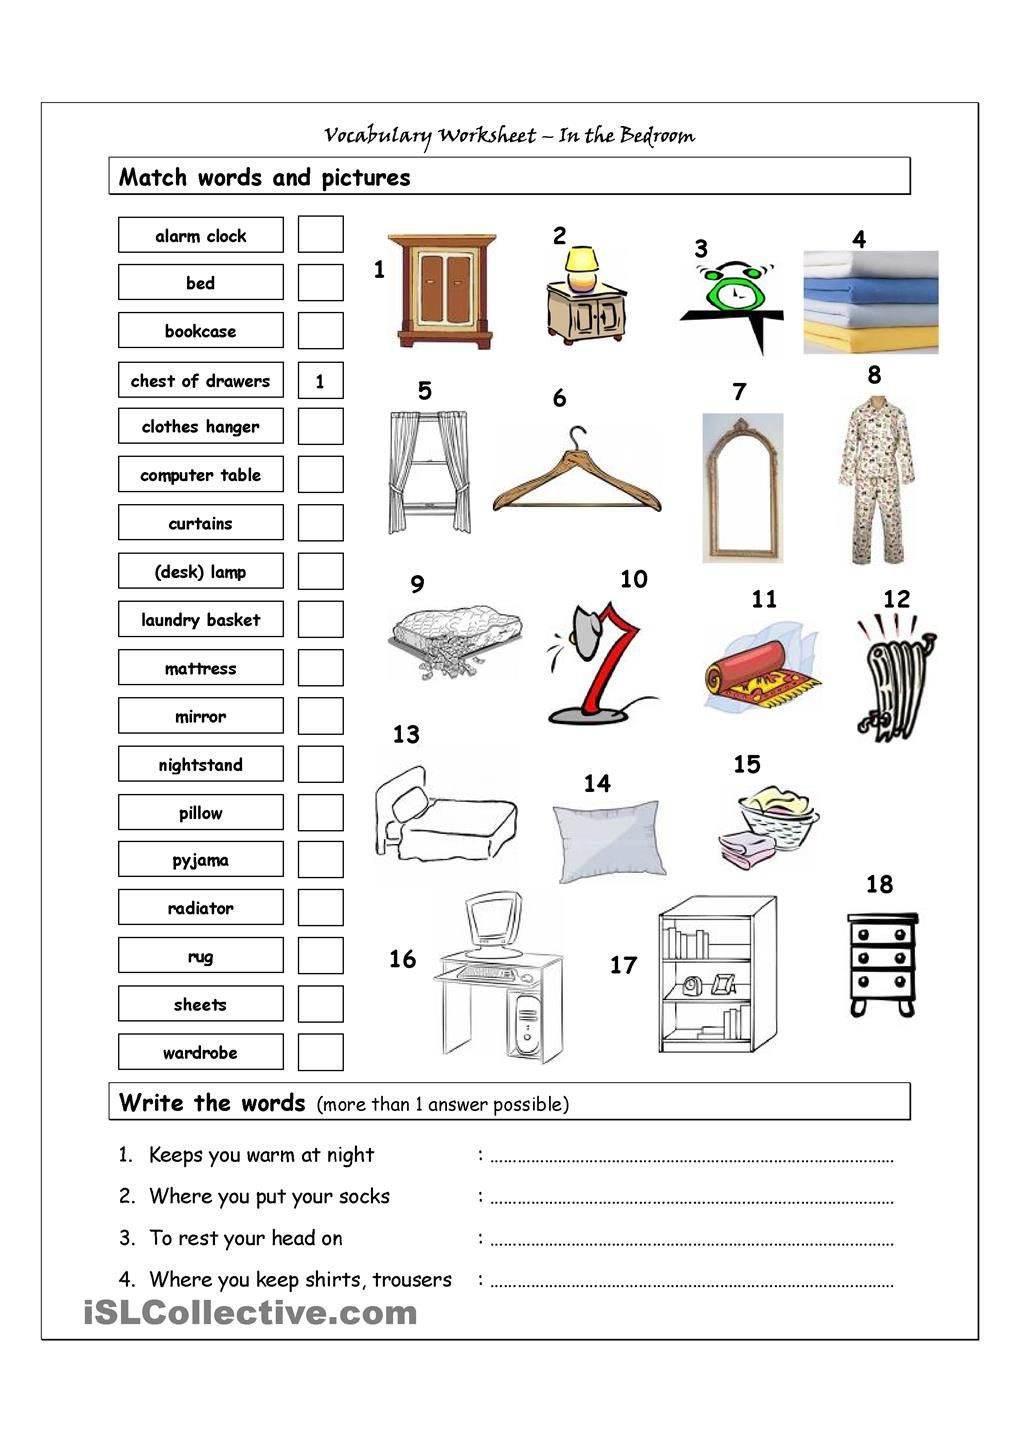 Vocabulary Worksheet Containing Bedroom It Has Two Sections Match Words And Pictures Matching Exercise Write The Creative